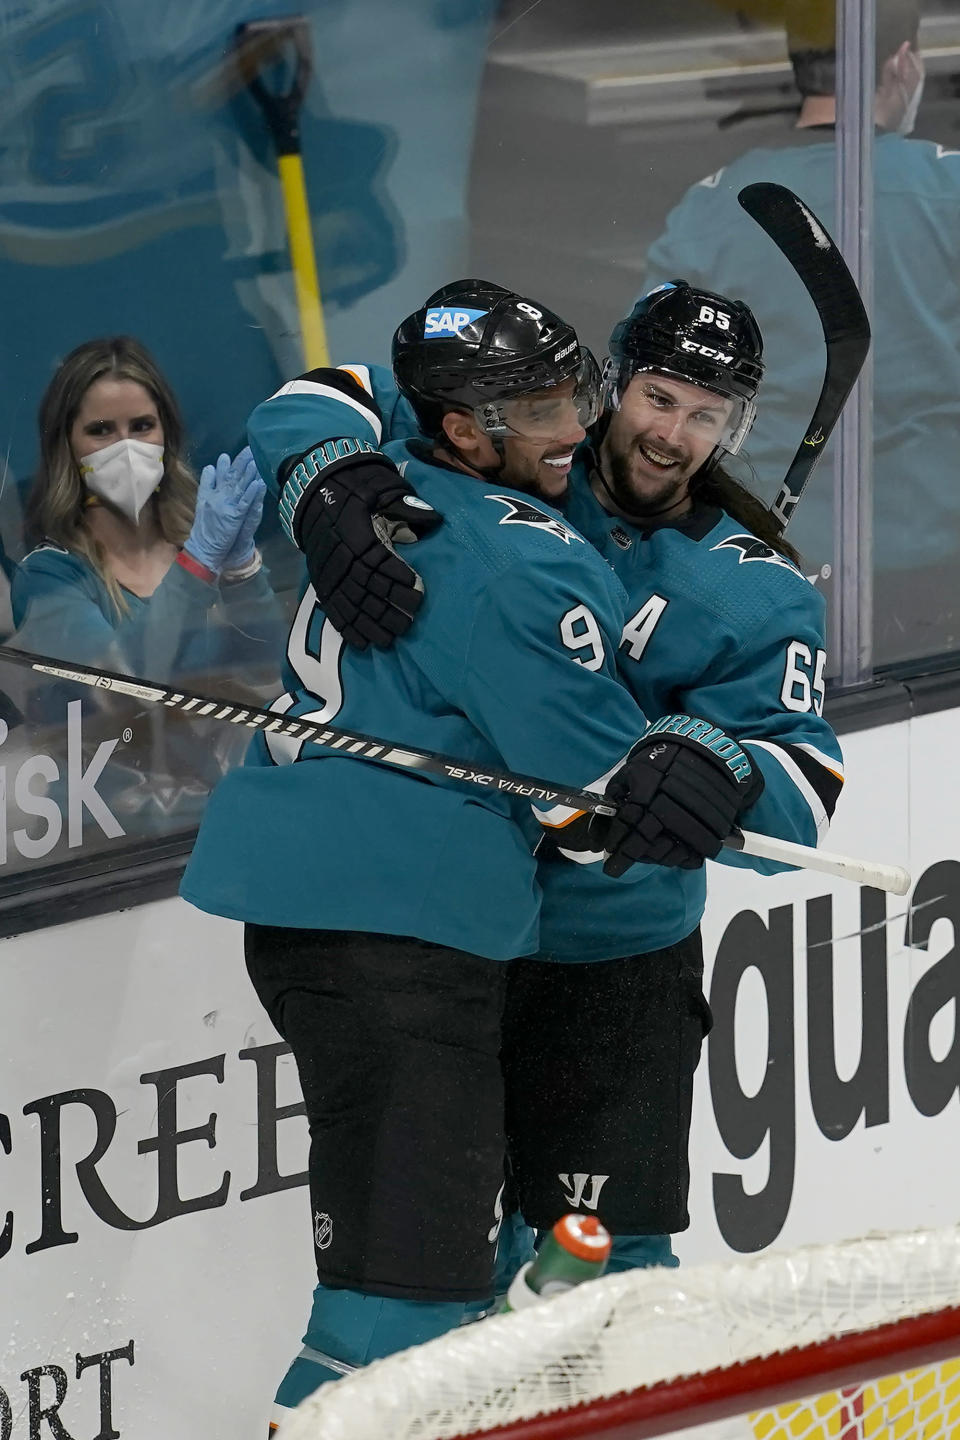 San Jose Sharks left wing Evander Kane, left, is congratulated by defenseman Erik Karlsson after scoring against the St. Louis Blues during overtime of an NHL hockey game in San Jose, Calif., Monday, March 8, 2021. (AP Photo/Jeff Chiu)